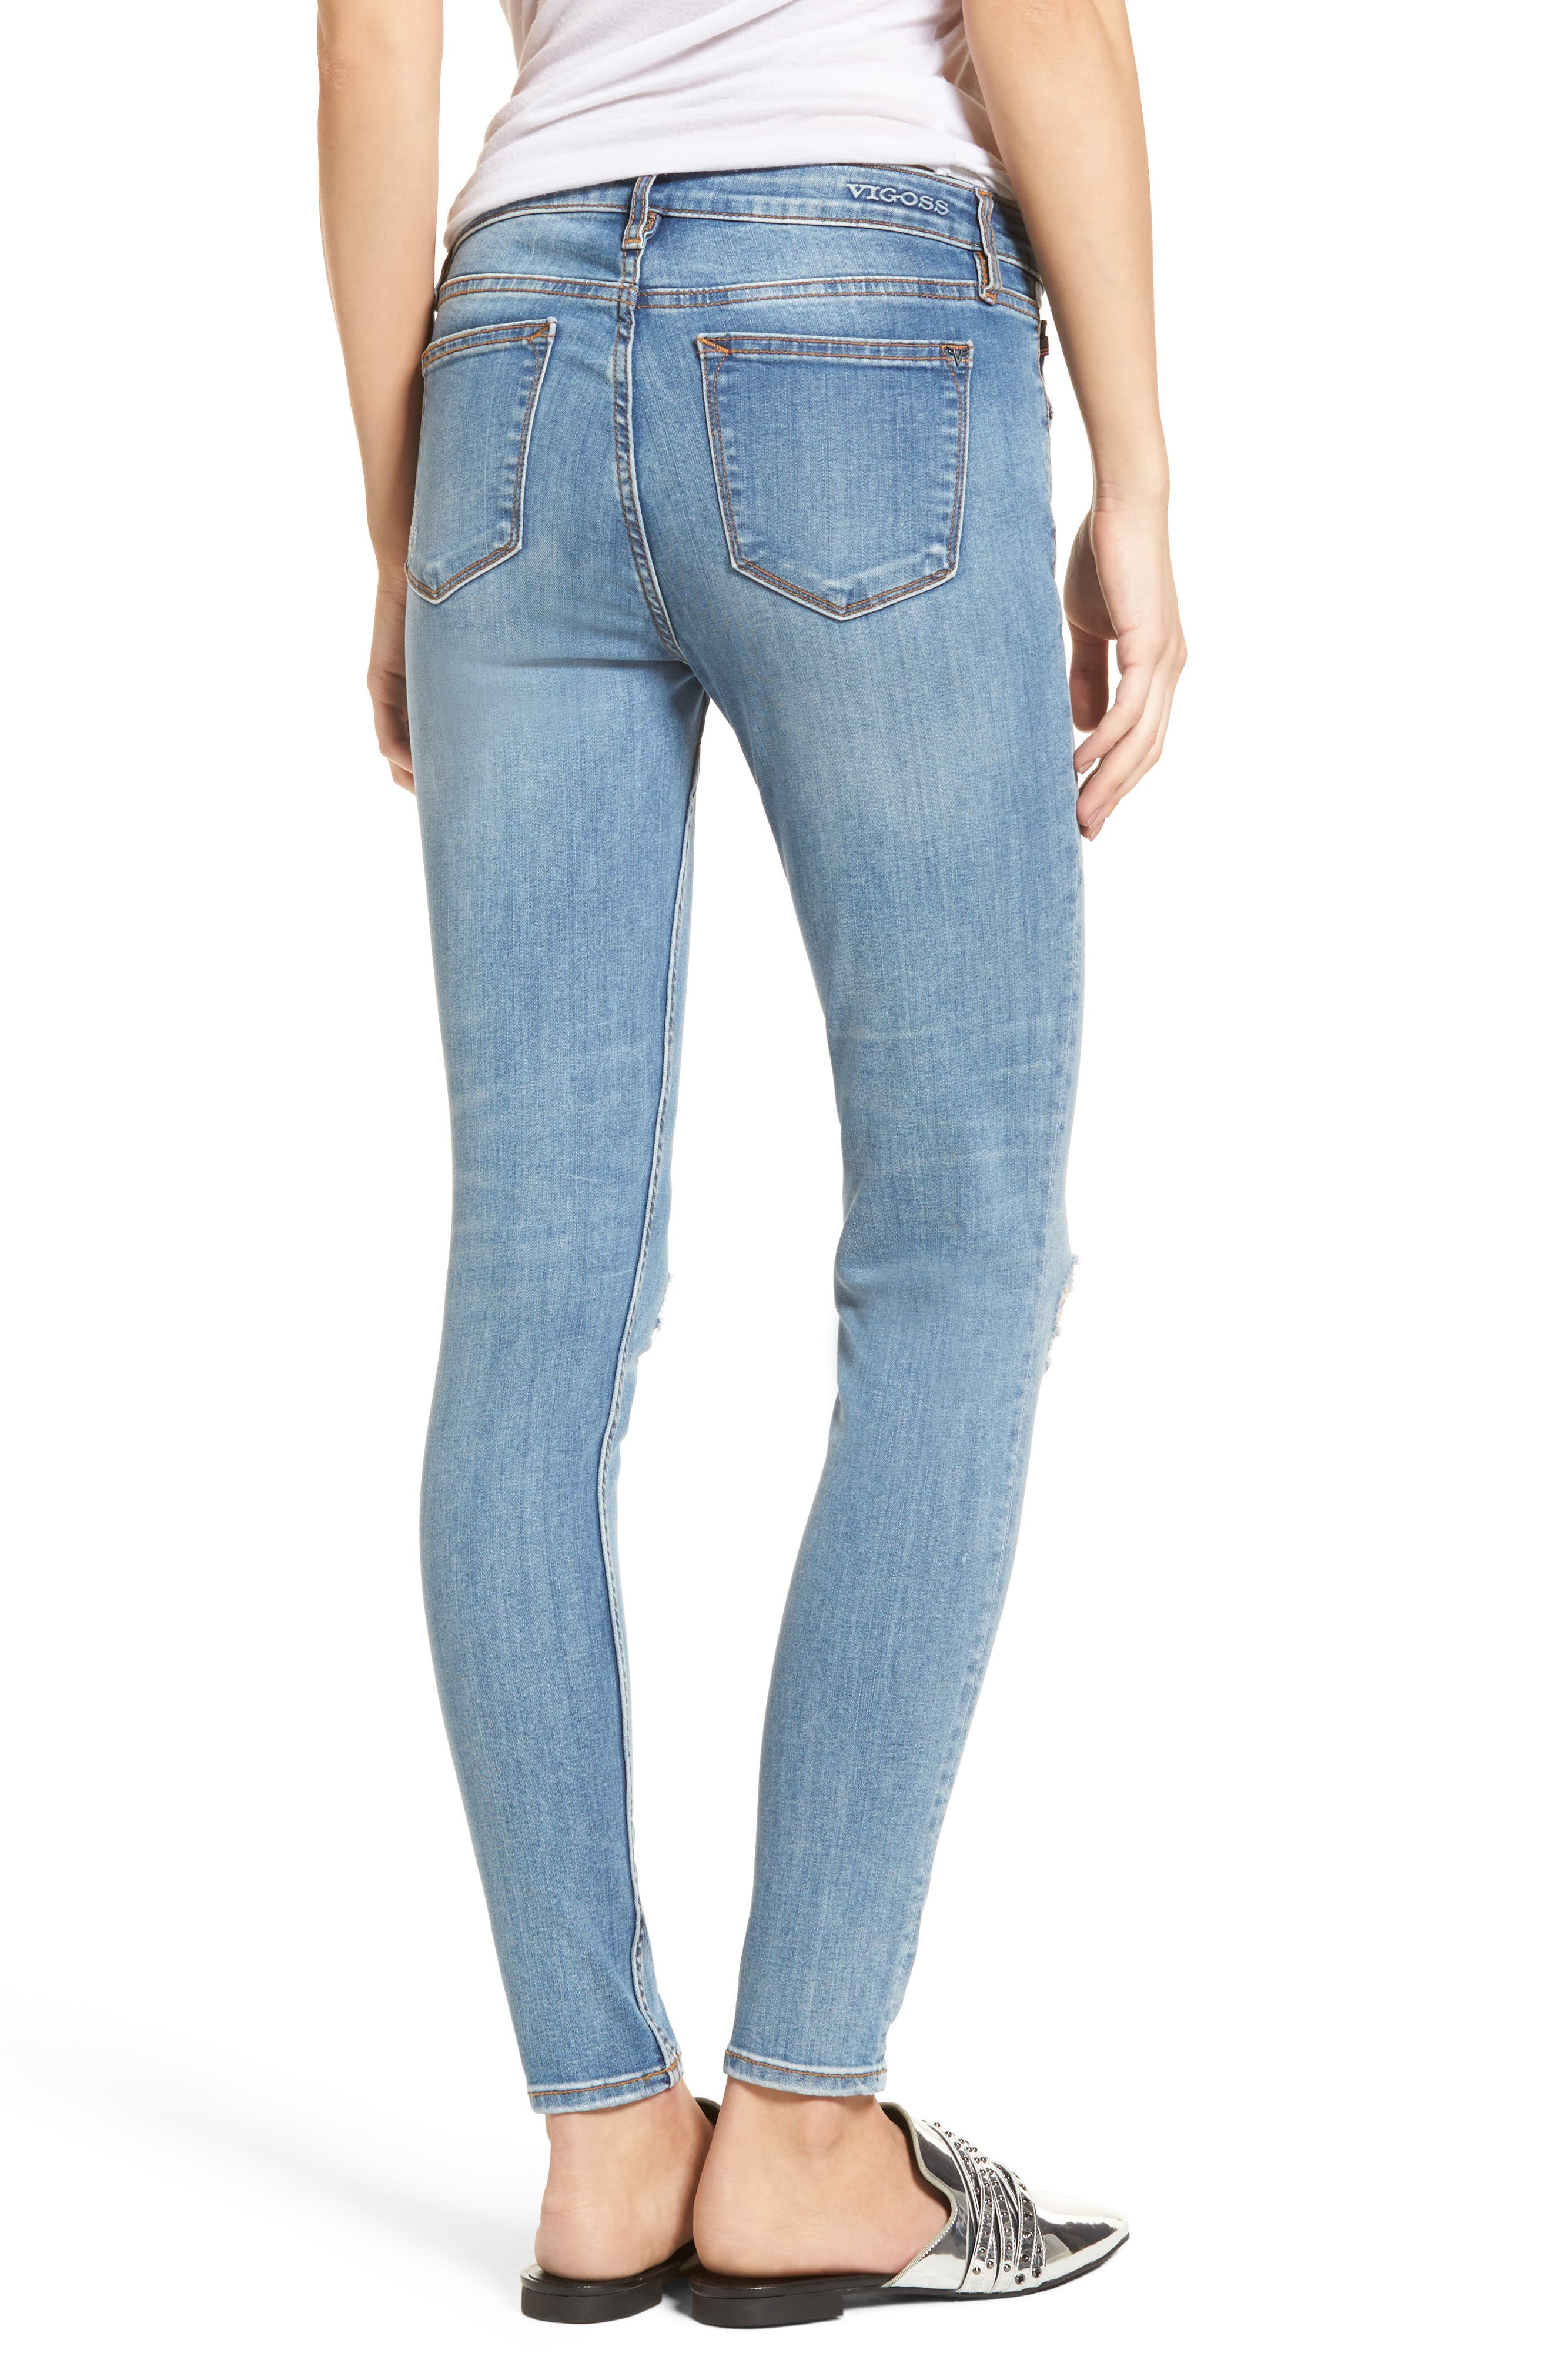 Edie Distressed Skinny Jeans,                             Alternate thumbnail 2, color,                             Light Wash